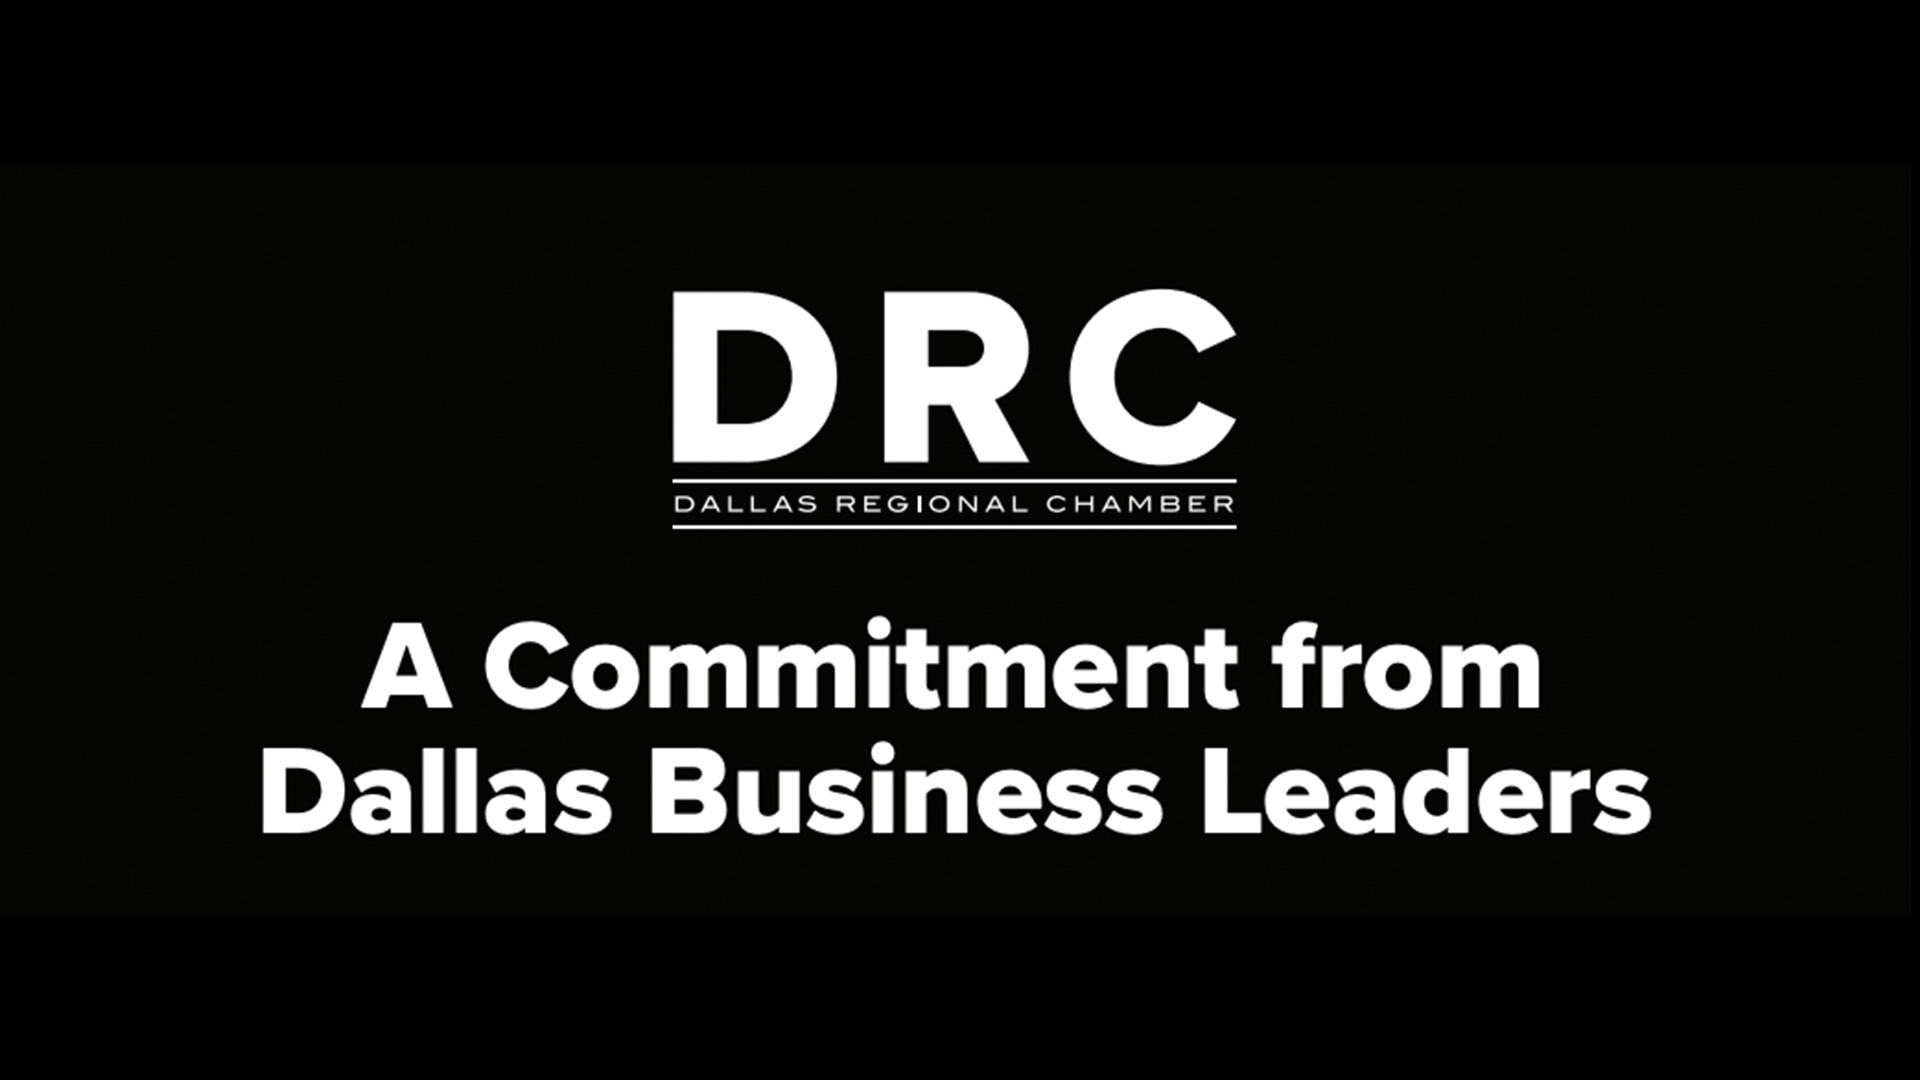 Bottle Rocket Joins The Dallas Regional Chamber in Committing to Leading Change in Dallas